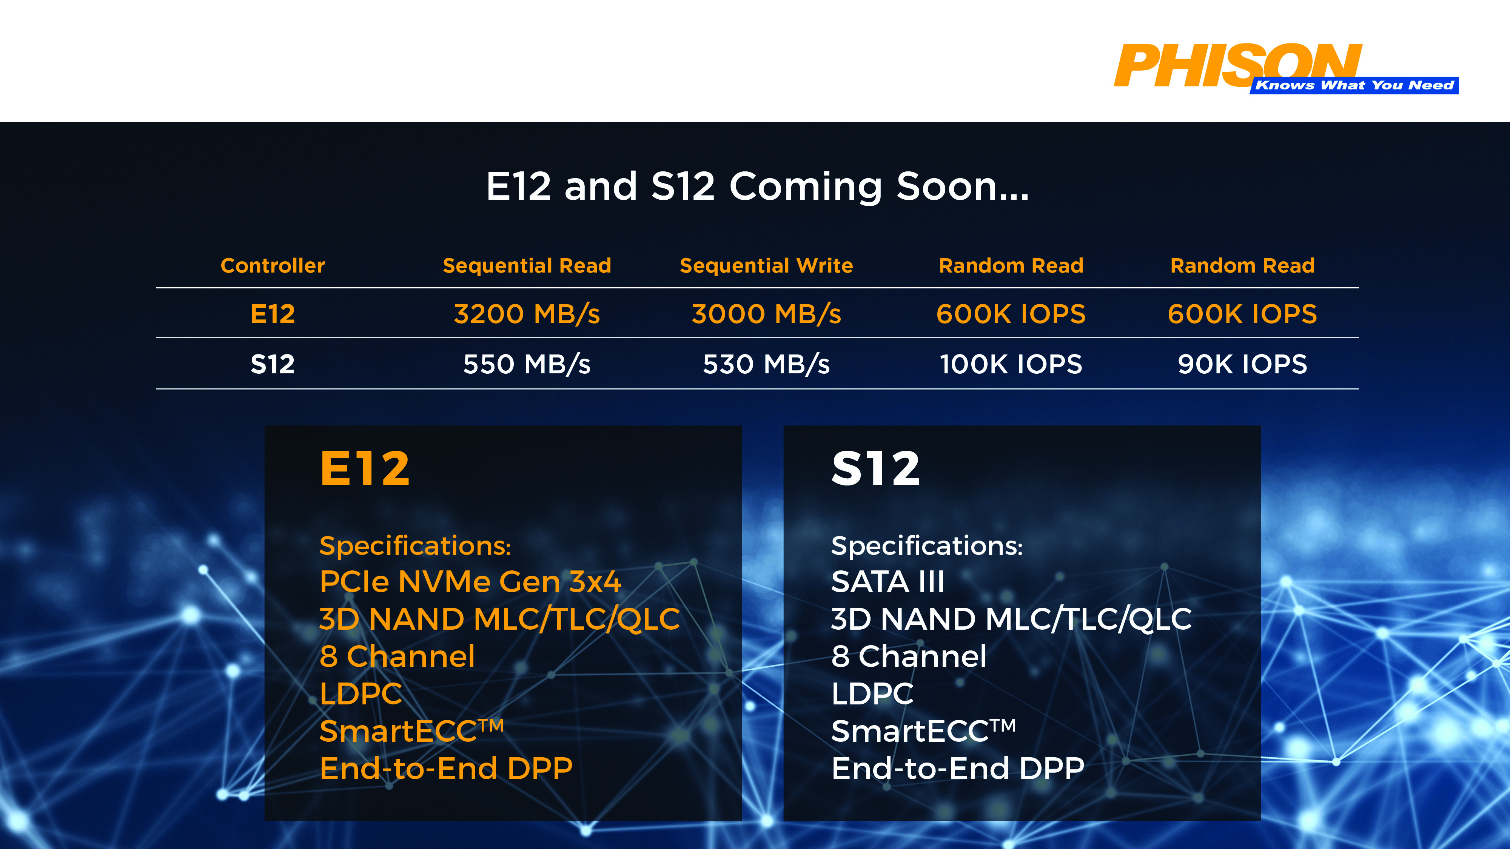 Phison details upcoming QLC compliant E12 and S12 memory controllers